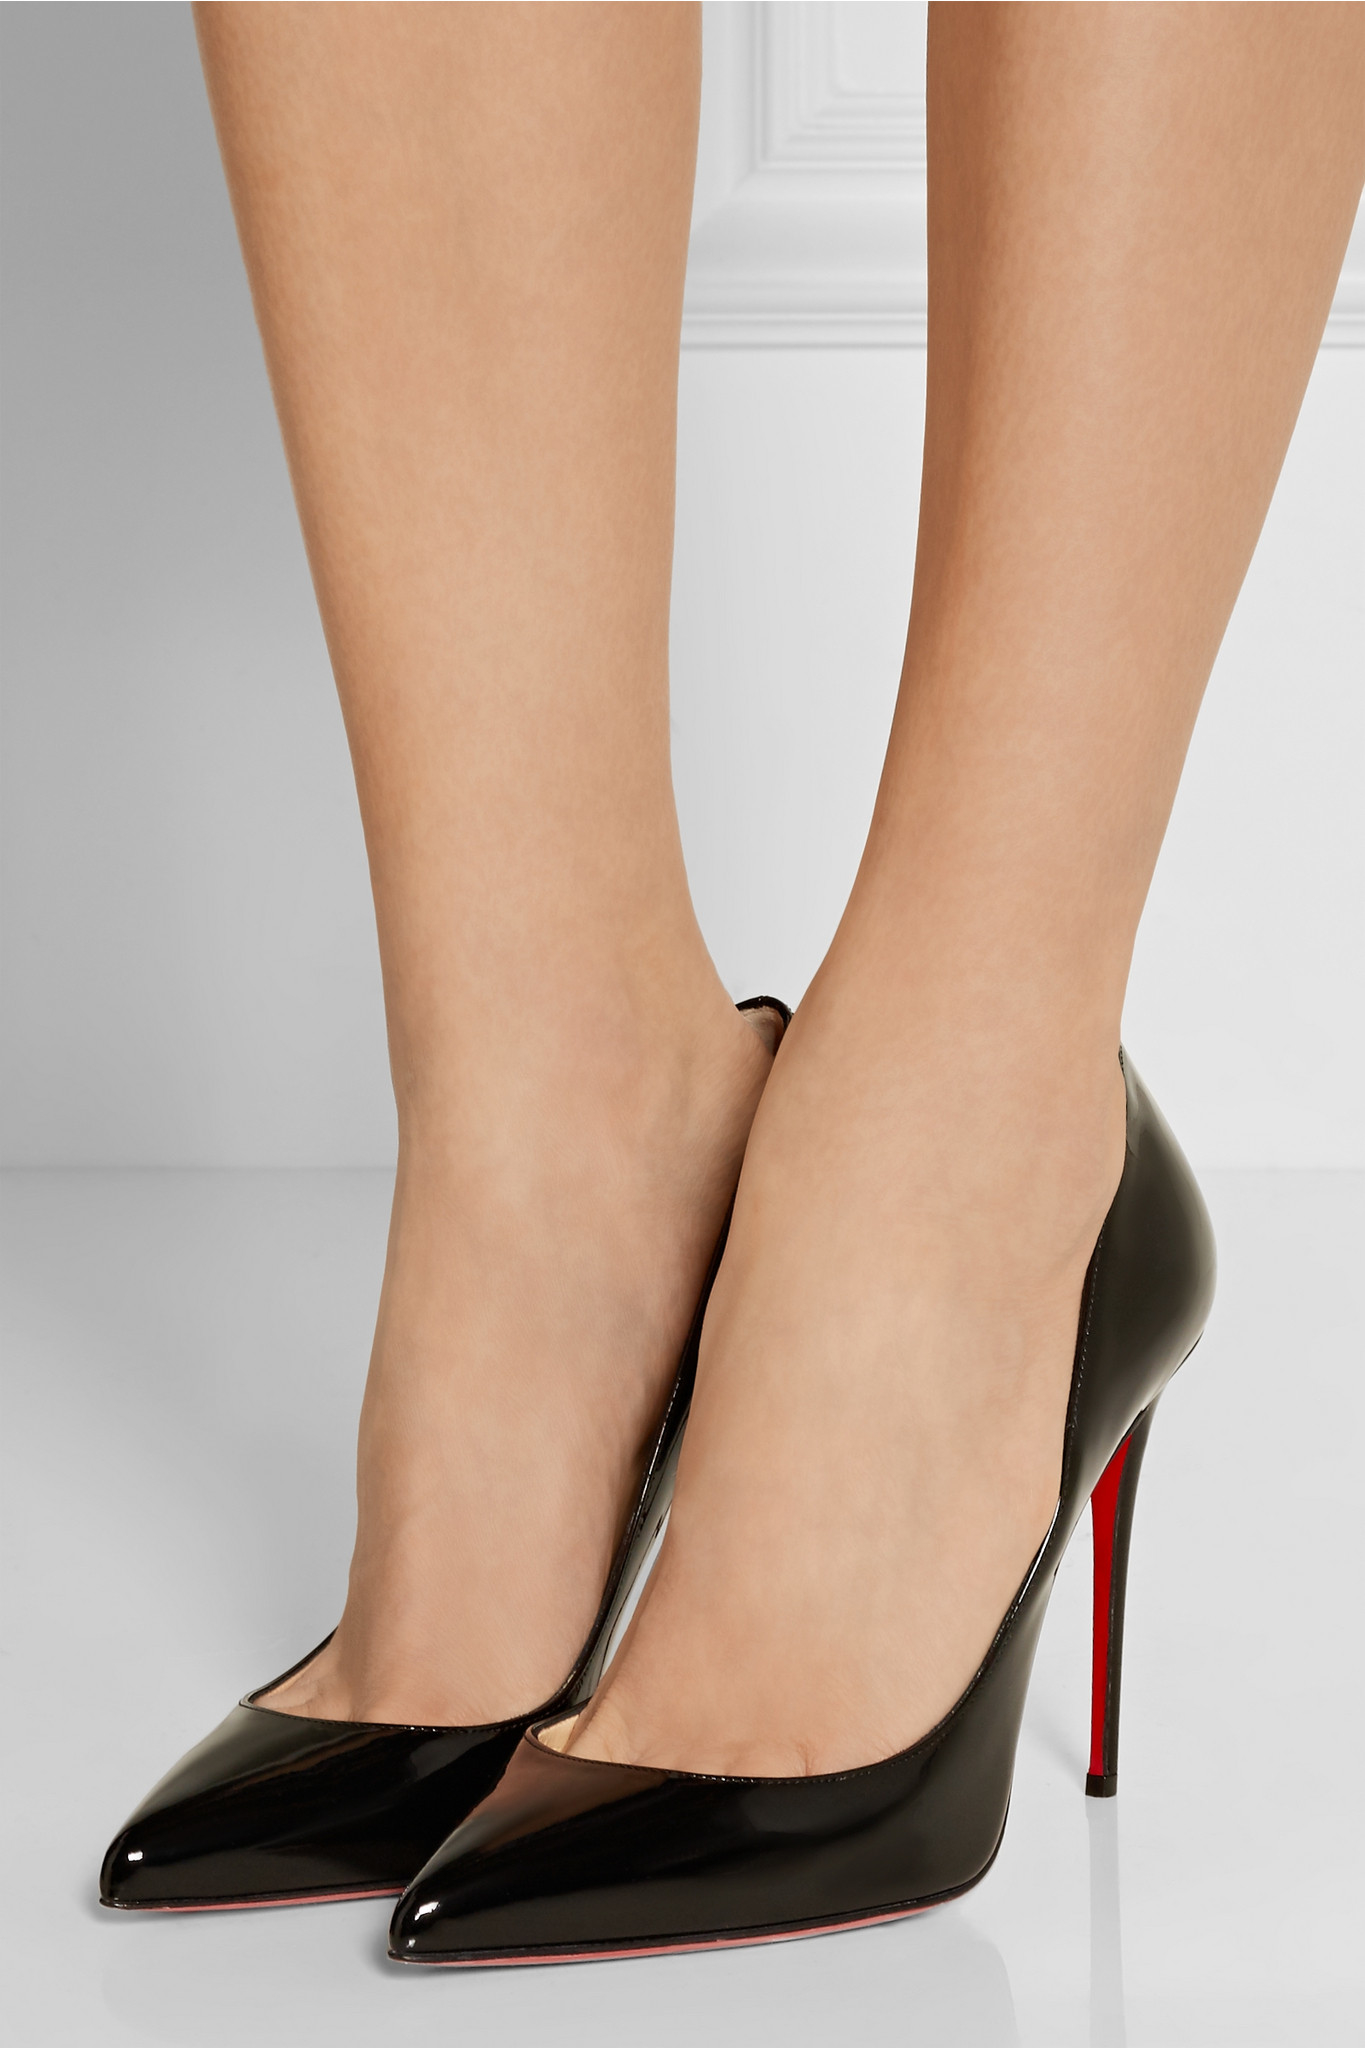 bde1966eca6e Christian louboutin Pigalle Follies 100 Patent-leather Pumps in .